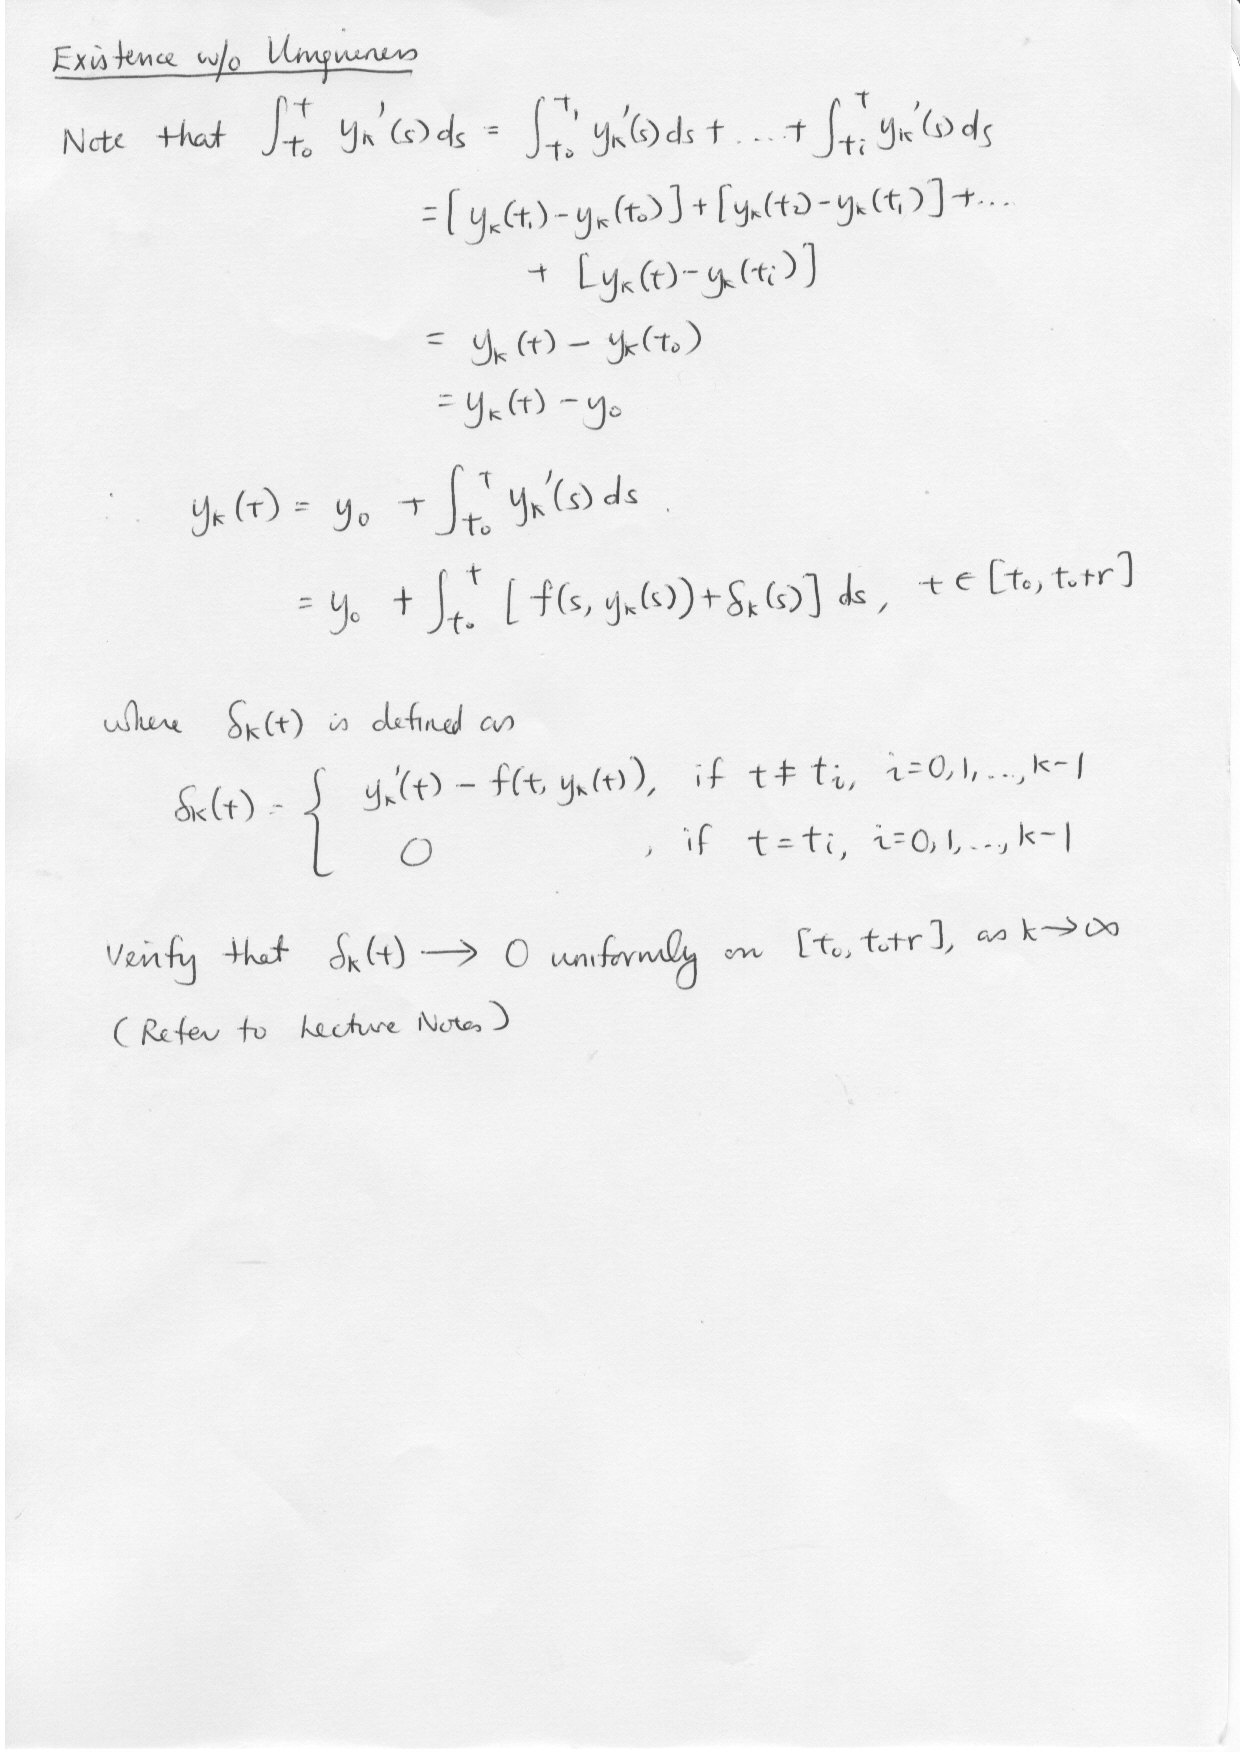 Arithmetic And Geometric Sequence Worksheet - Tecnologialinstante